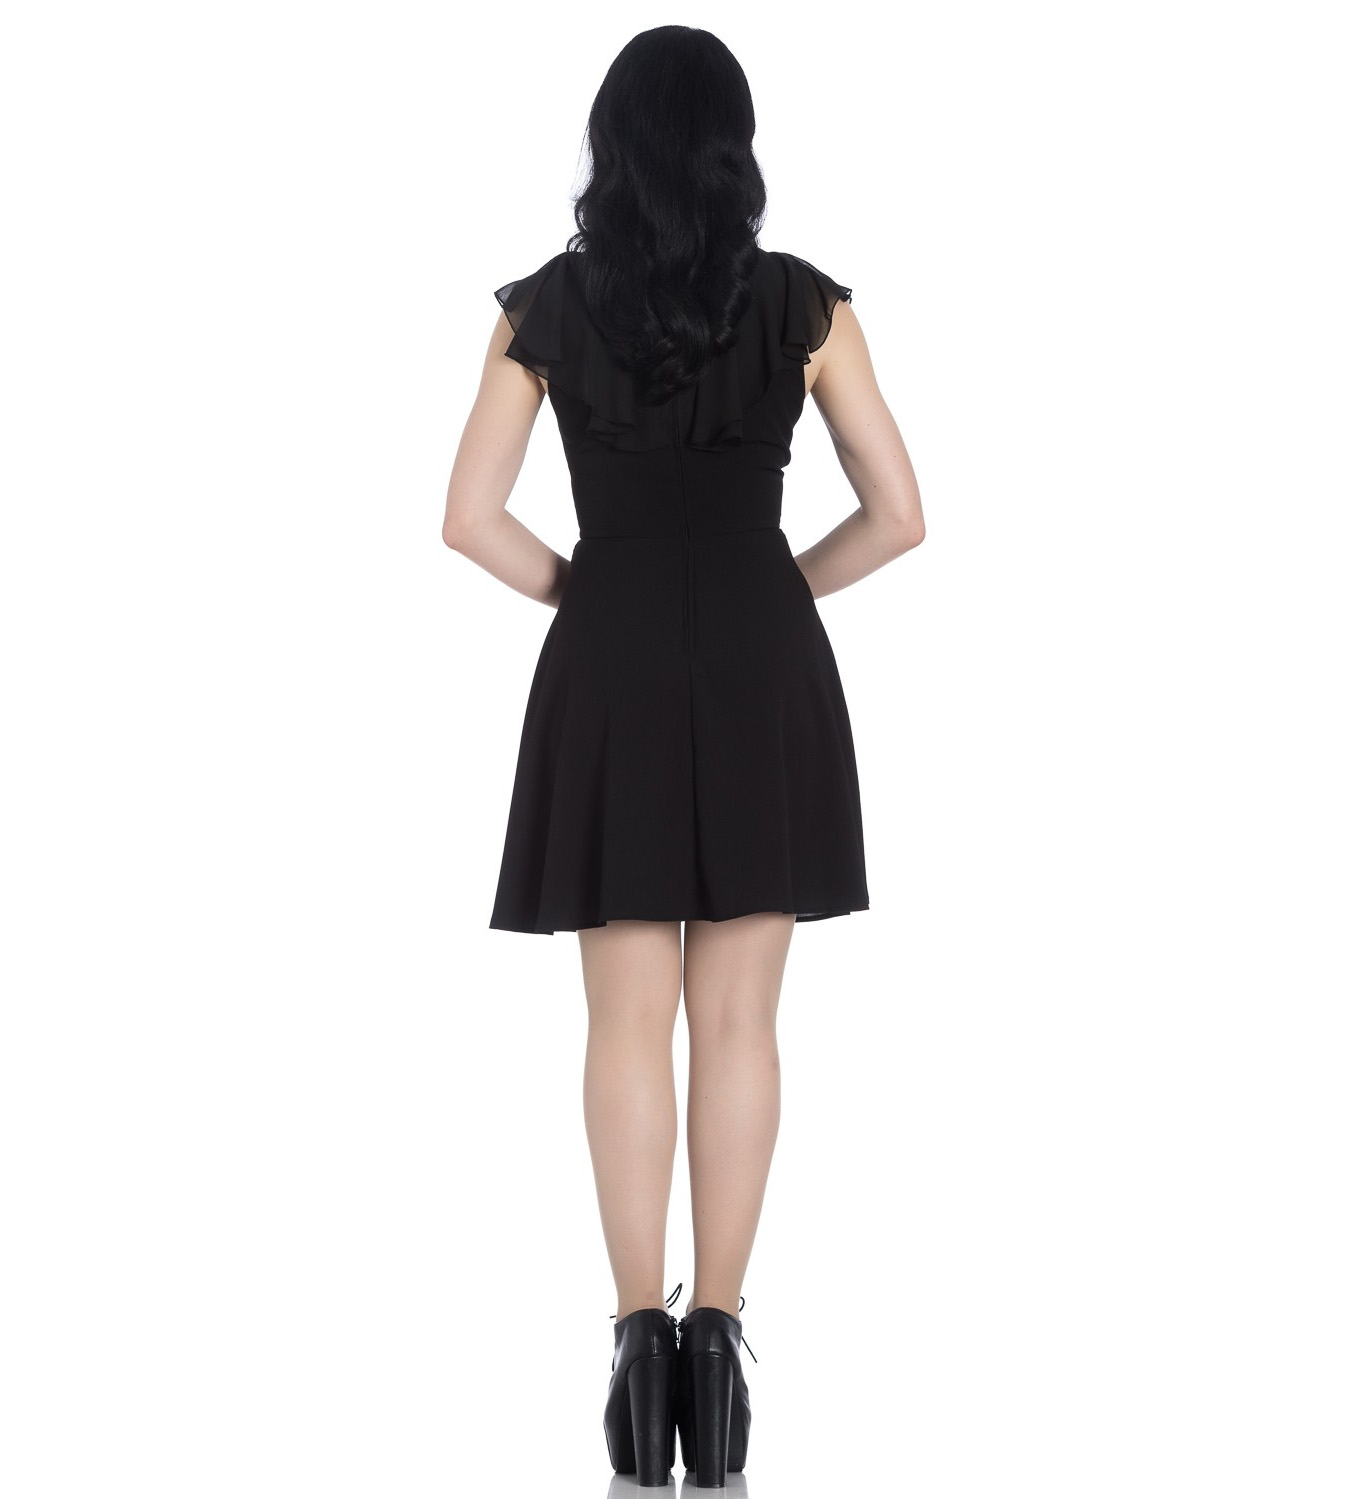 Hell-Bunny-Floaty-Lace-Up-Goth-Witch-Punk-Mini-Dress-ONYX-Black-All-Sizes thumbnail 37